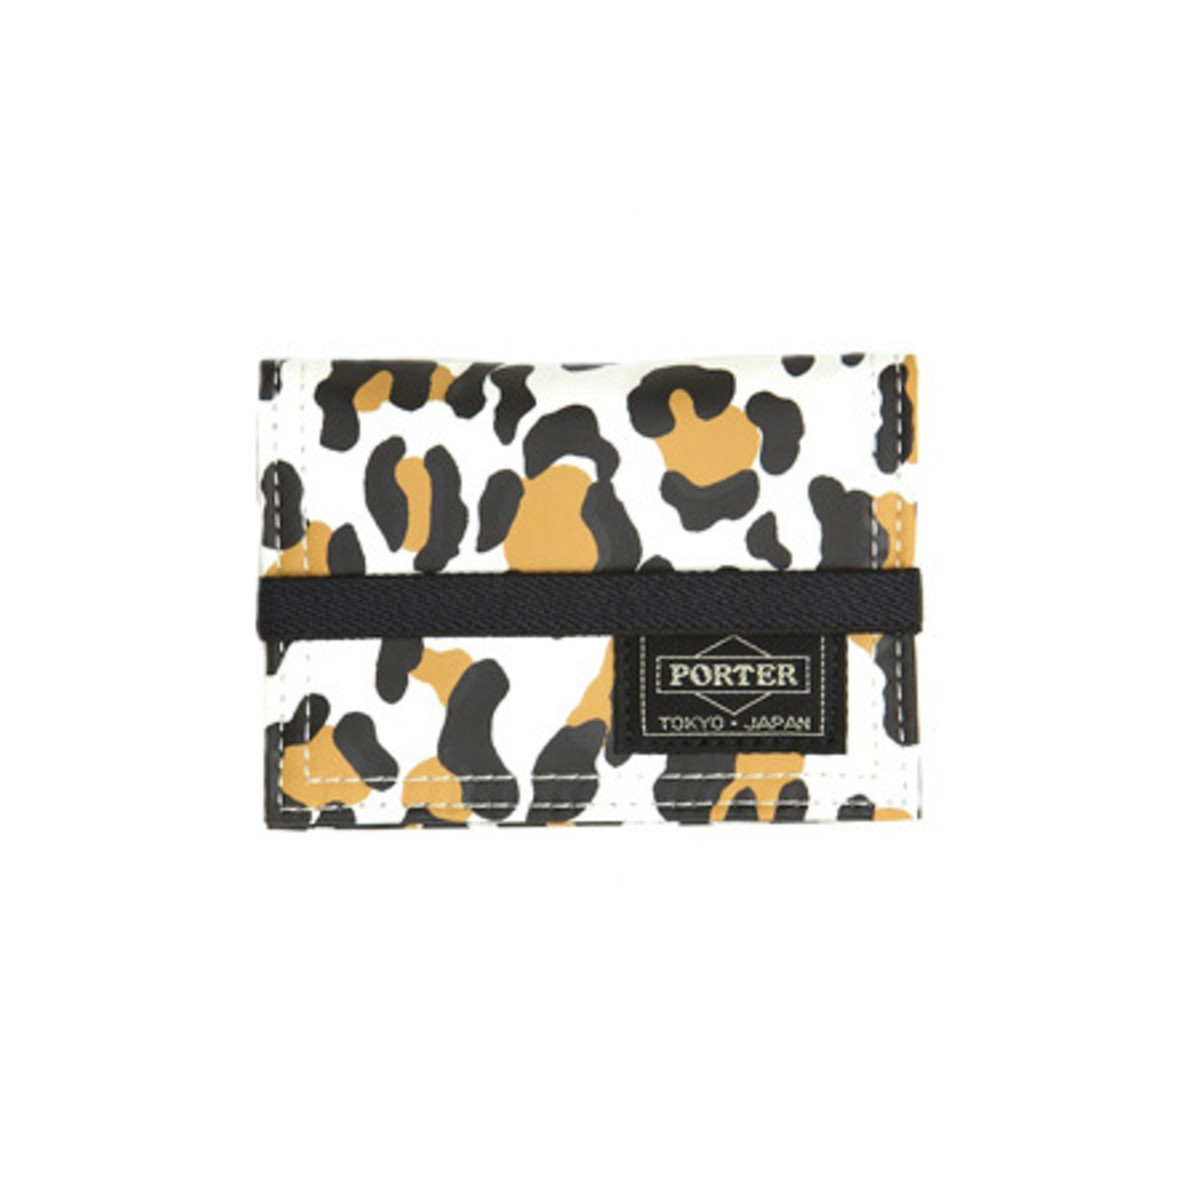 Snow Leopard Band Card Case